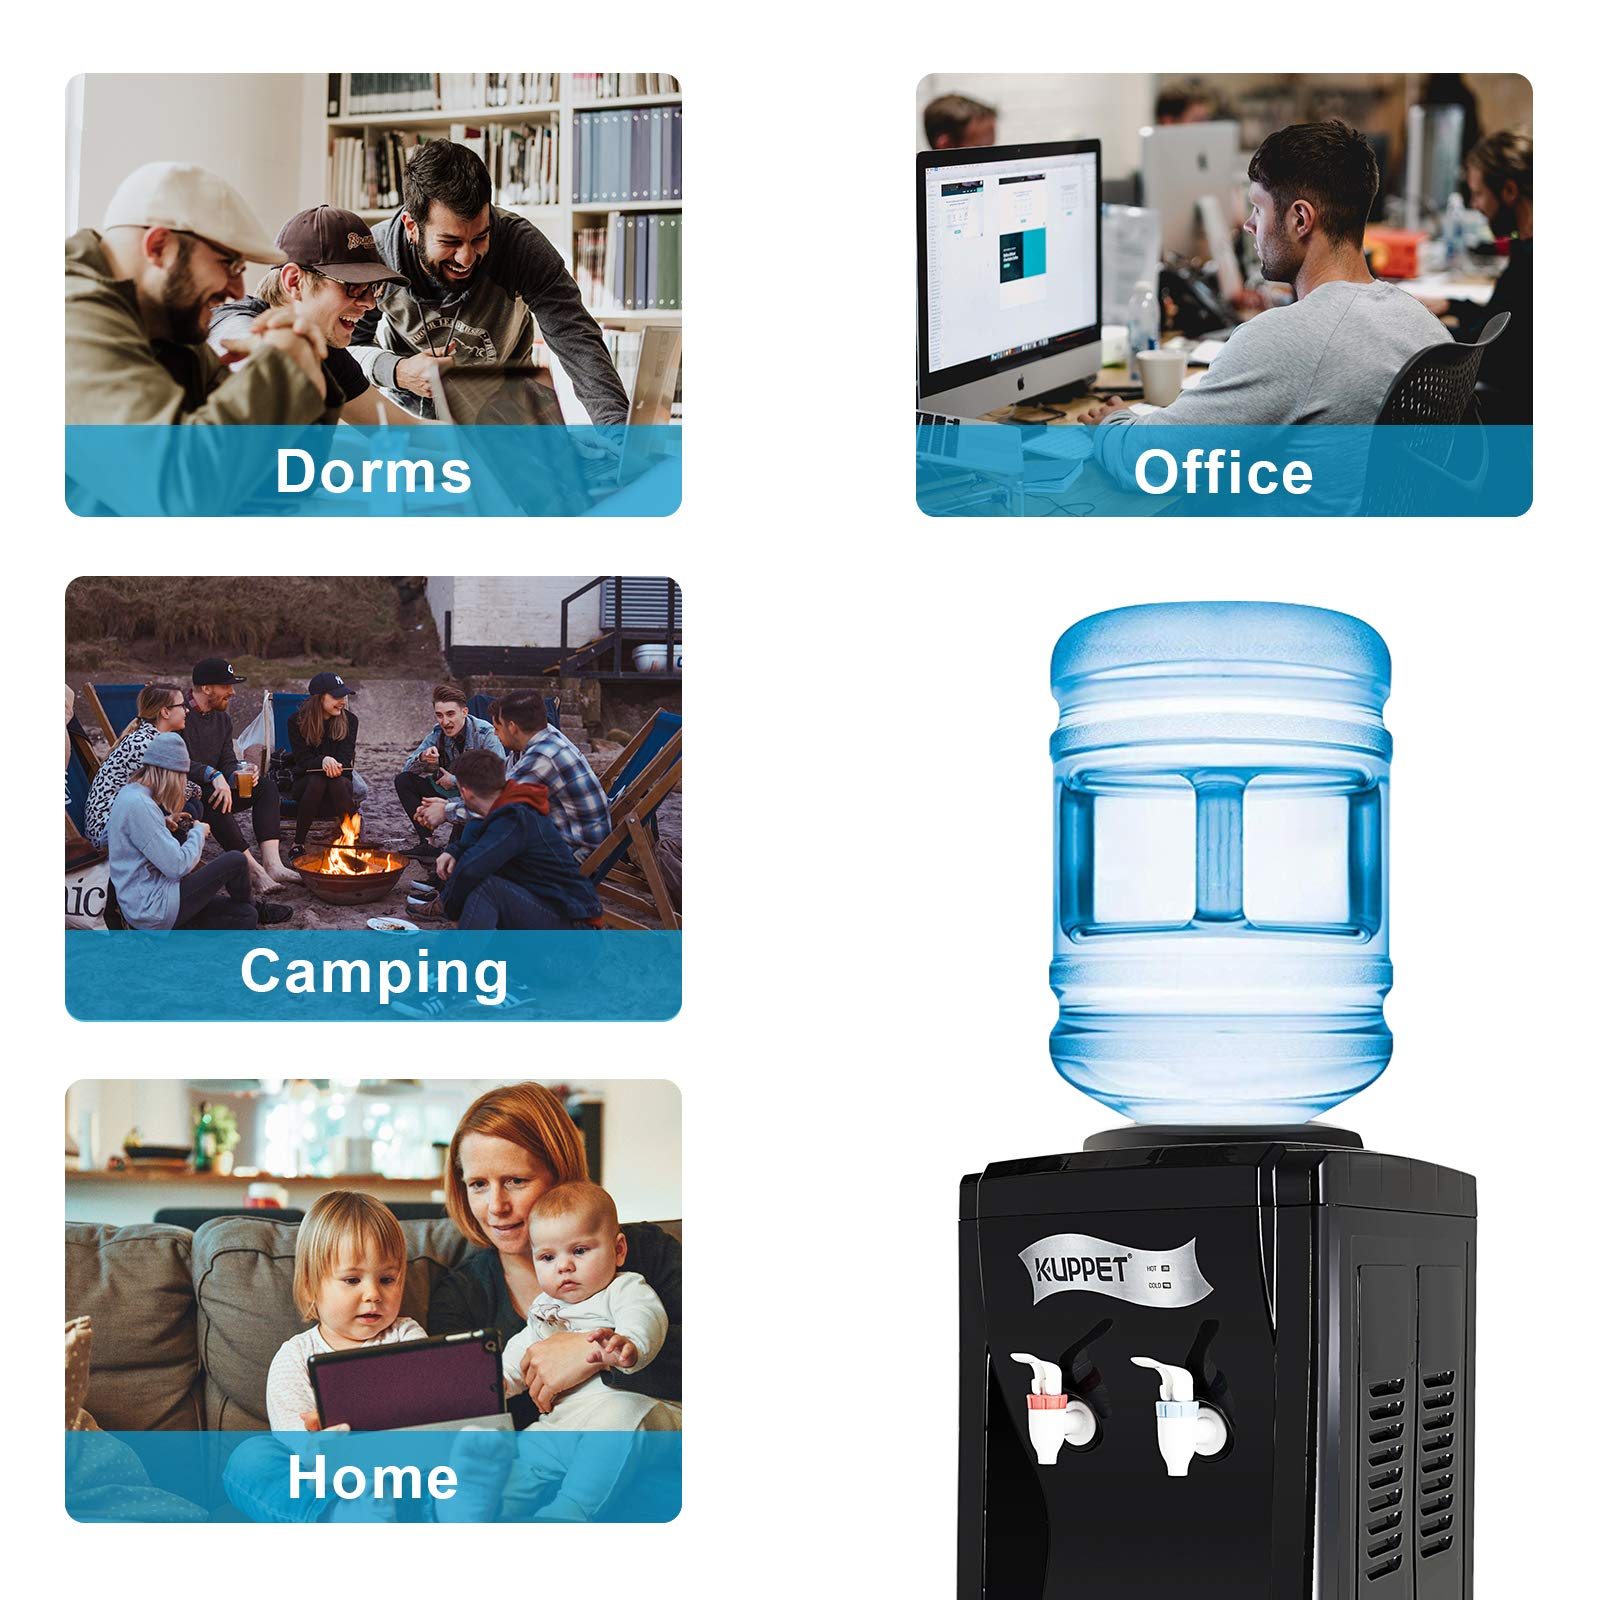 KUPPET Water Cooler Dispenser-Top Loading Freestanding Water Dispenser with Storage Cabinet, 5 Gallon, Two Temperature Settings-Hot(185℉-203℉), Normal Temperature(50℉-59℉), BLACK(32'', Black) by KUPPET (Image #5)